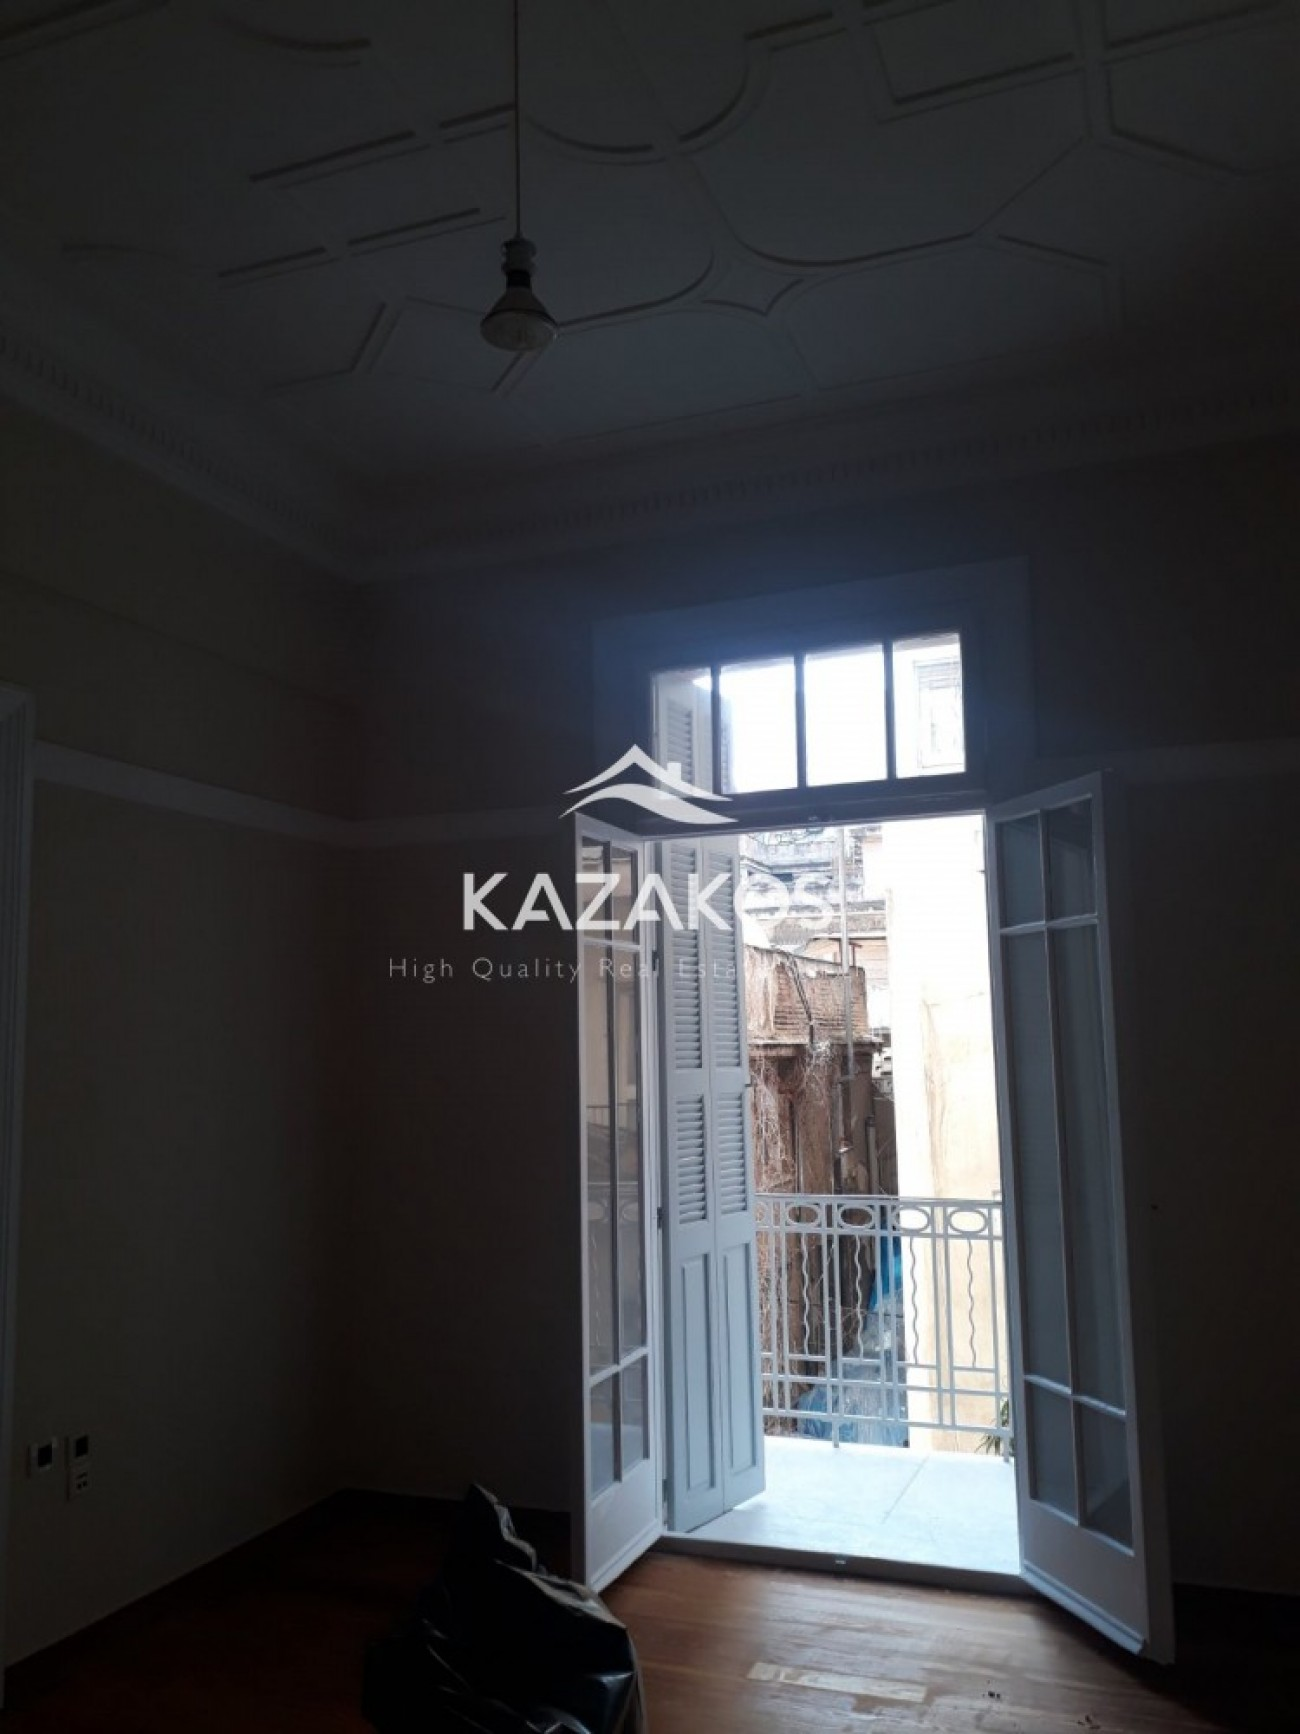 Office for Rent in Pedion tou Areos, Athens City Center, Greece